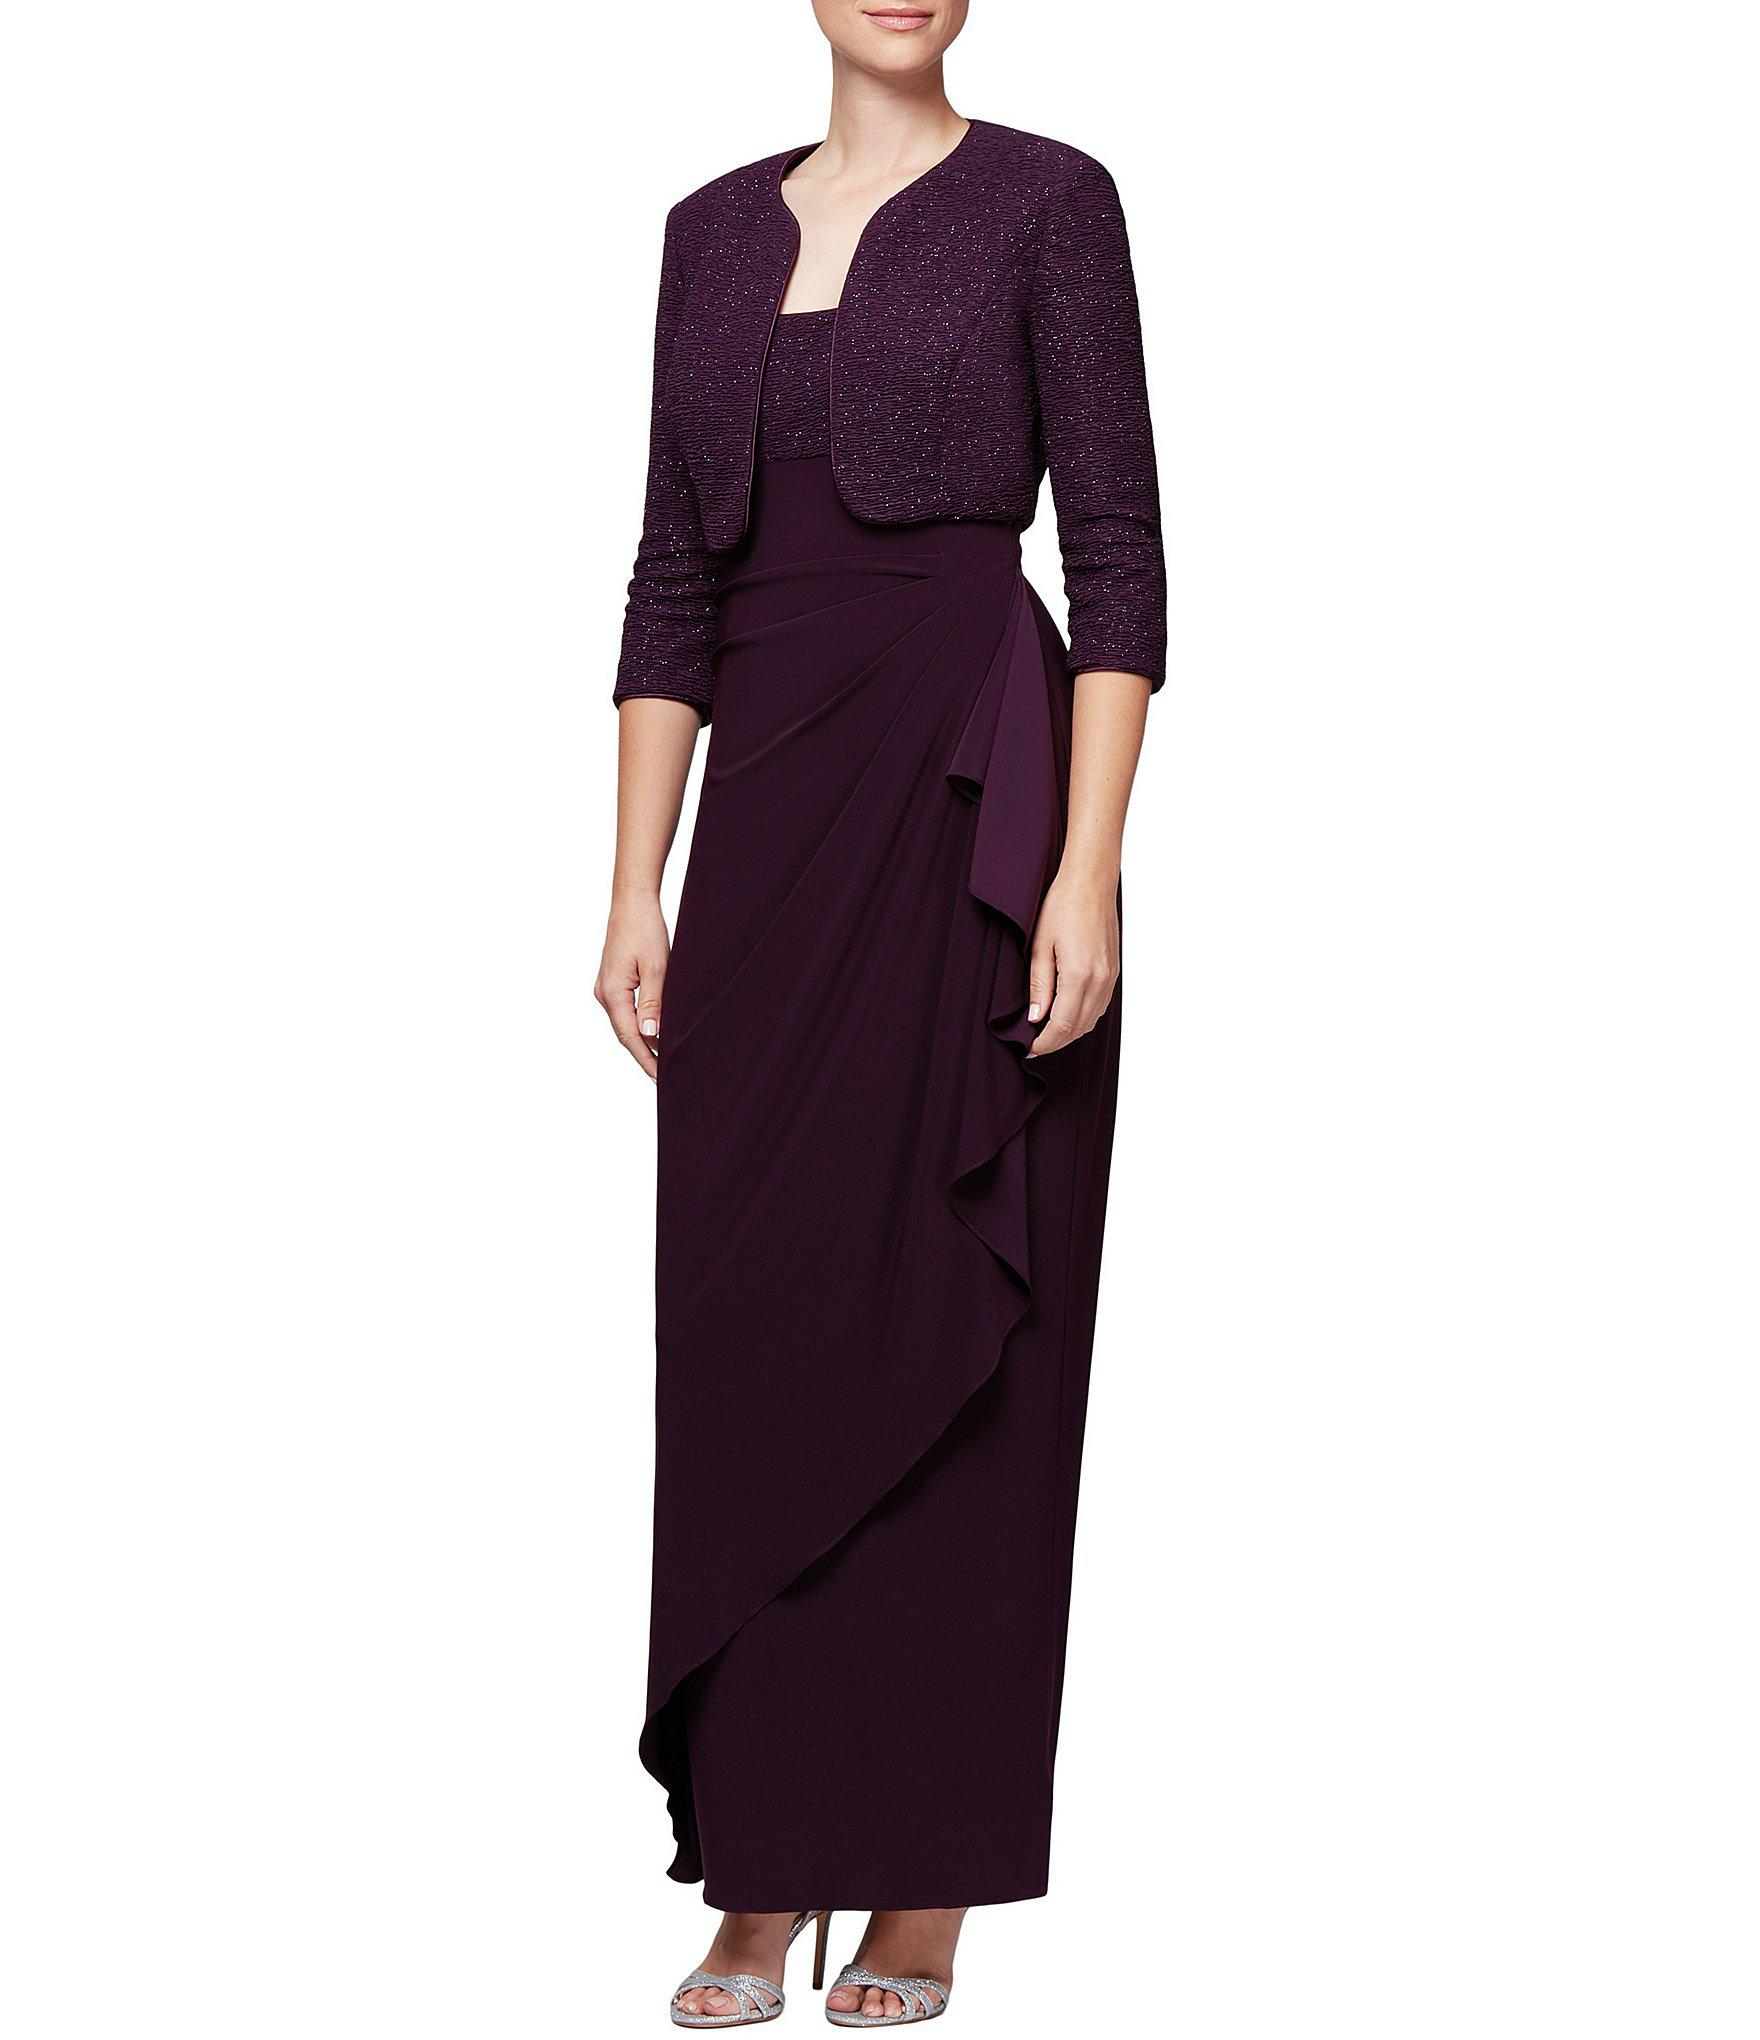 c76f09592a Petite Evening Dresses Dillards - Data Dynamic AG